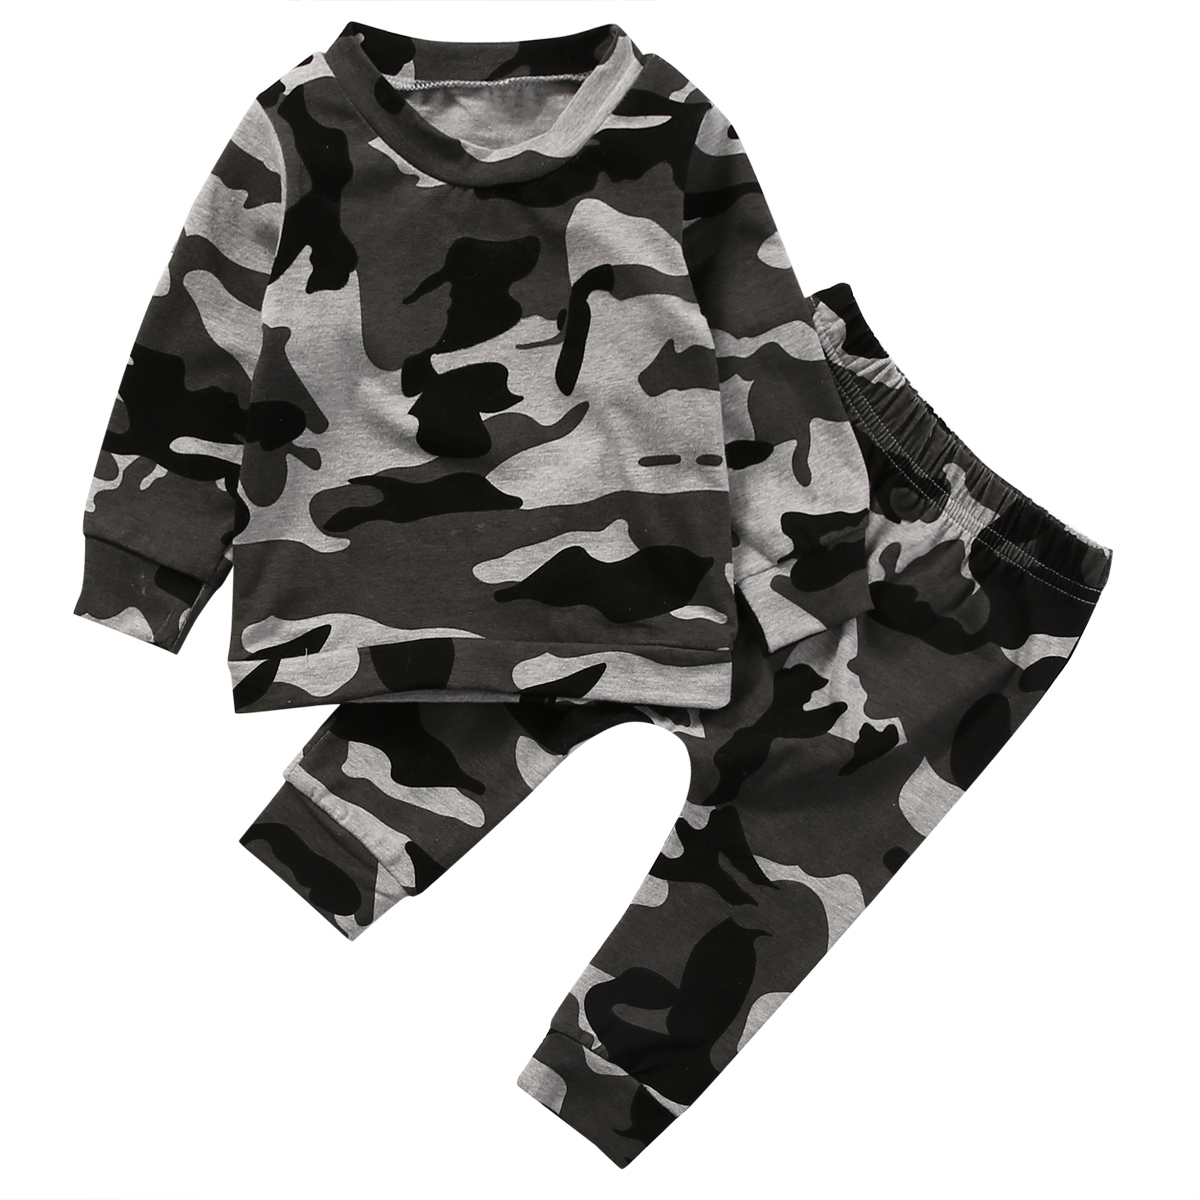 2pcs-new-baby-clothing-set-Toddler-Infant-Camouflage-Baby-Boy-Girl-Clothes-T-shirt-TopsPants-Outfits-Set-4